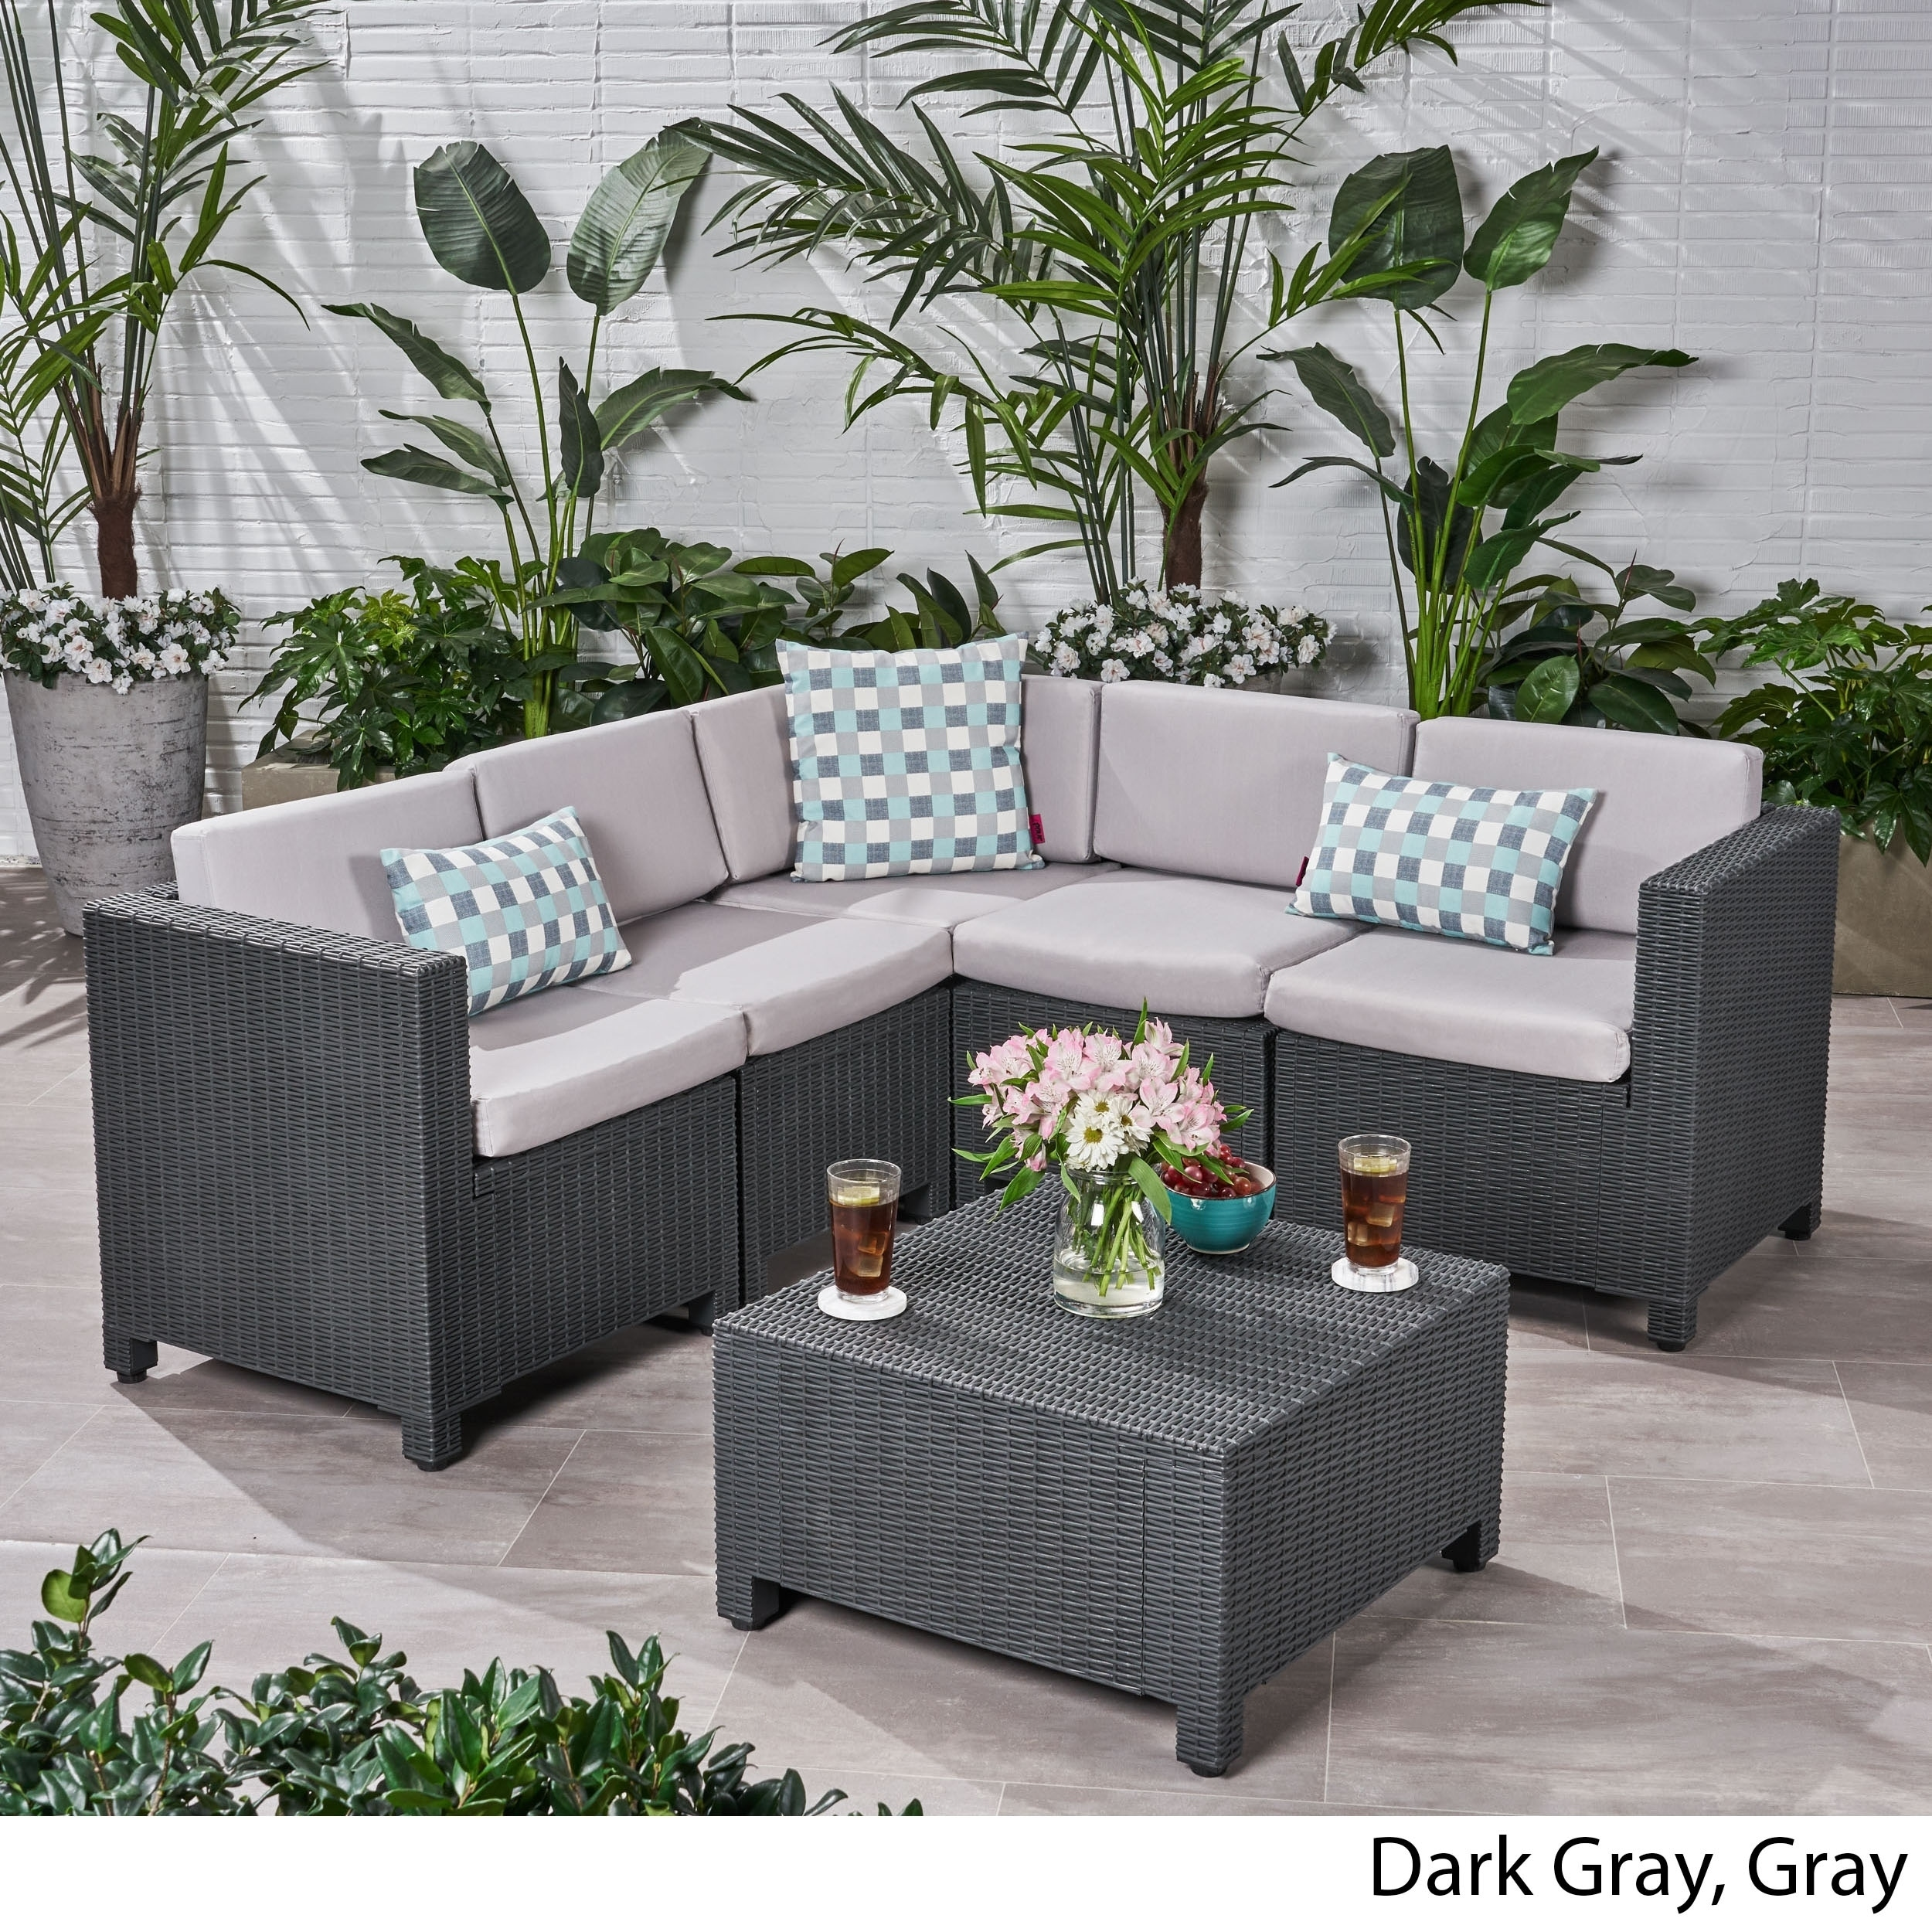 Shop Waverly Outdoor 5 Seater Faux Wicker Sectional Sofa Set with ...